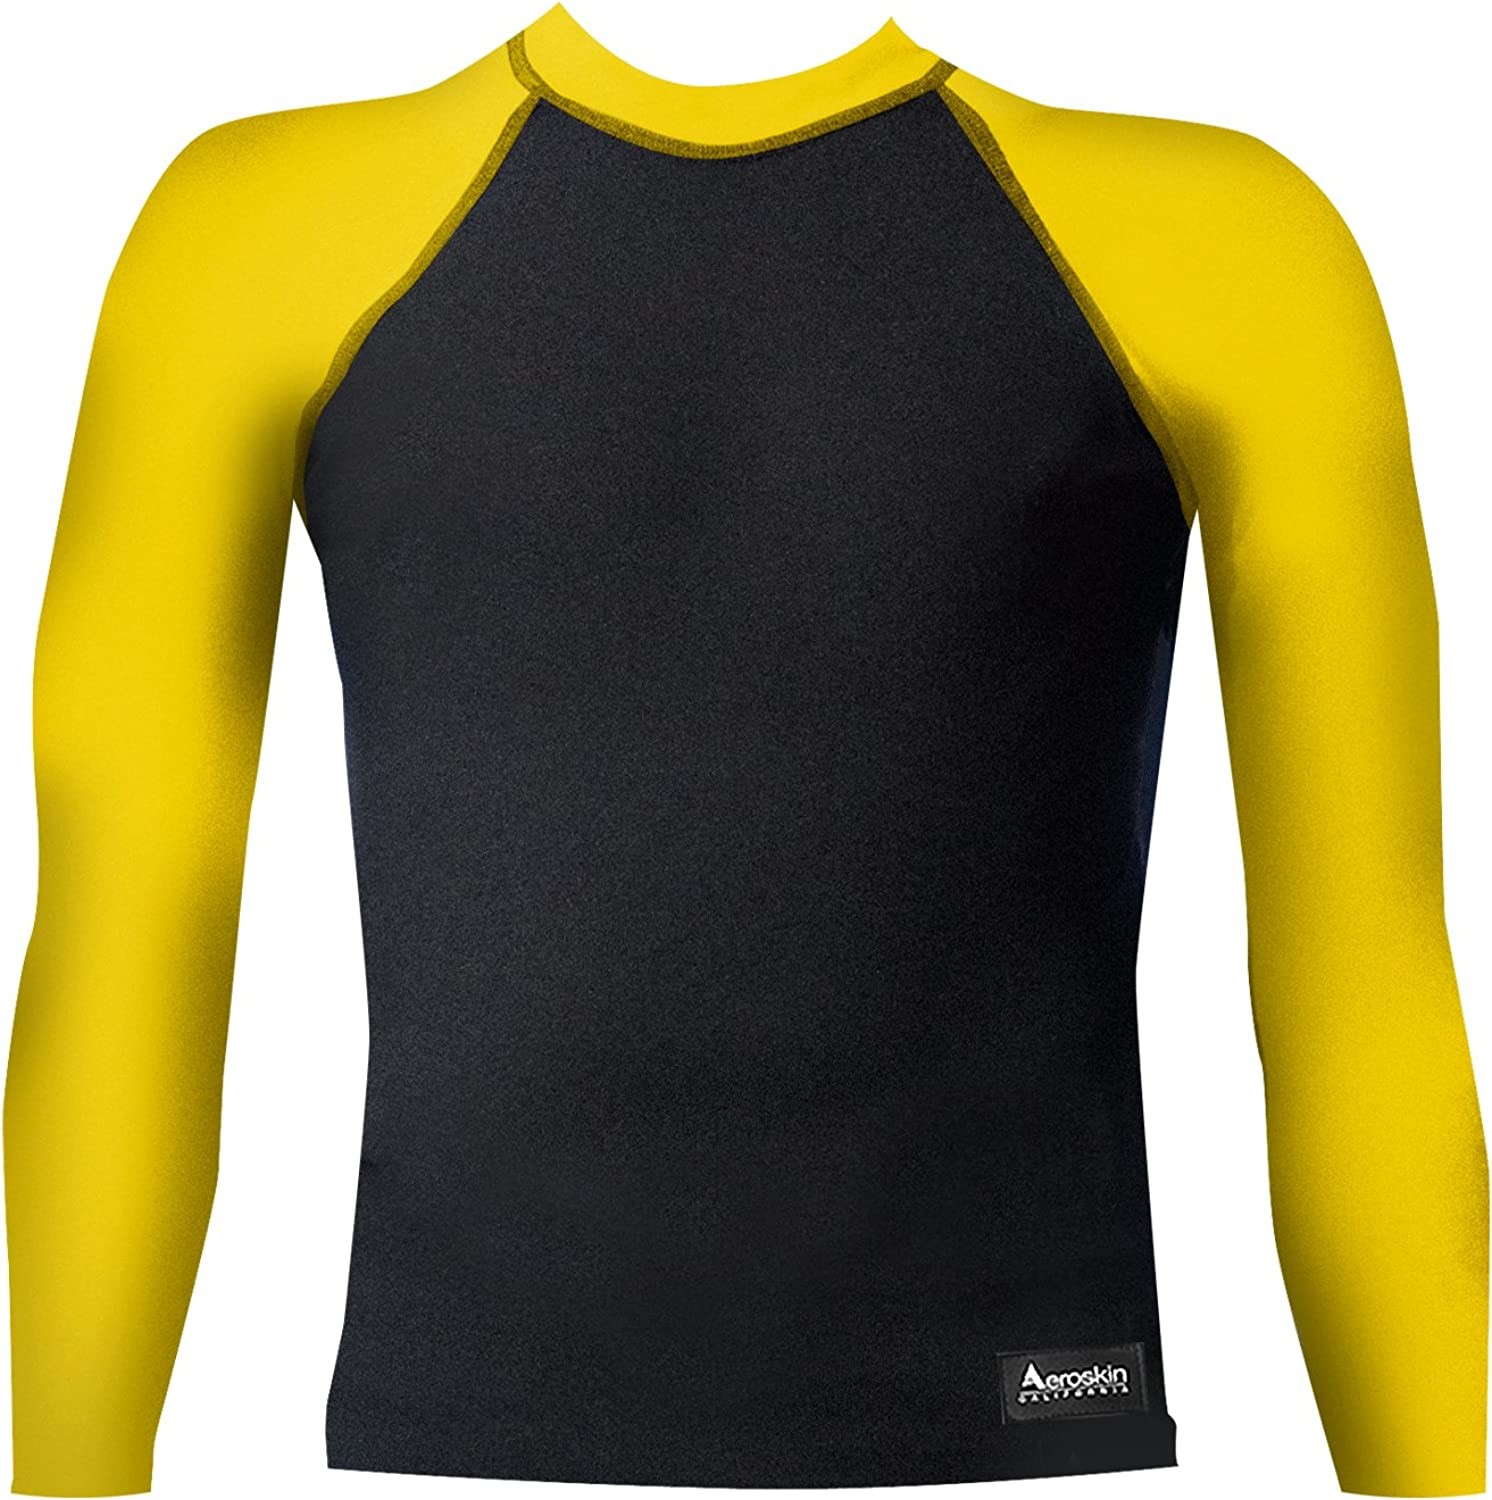 Aeroskin Raglan Long Sleeve Shirt with color Accent and Fuzzy Collar